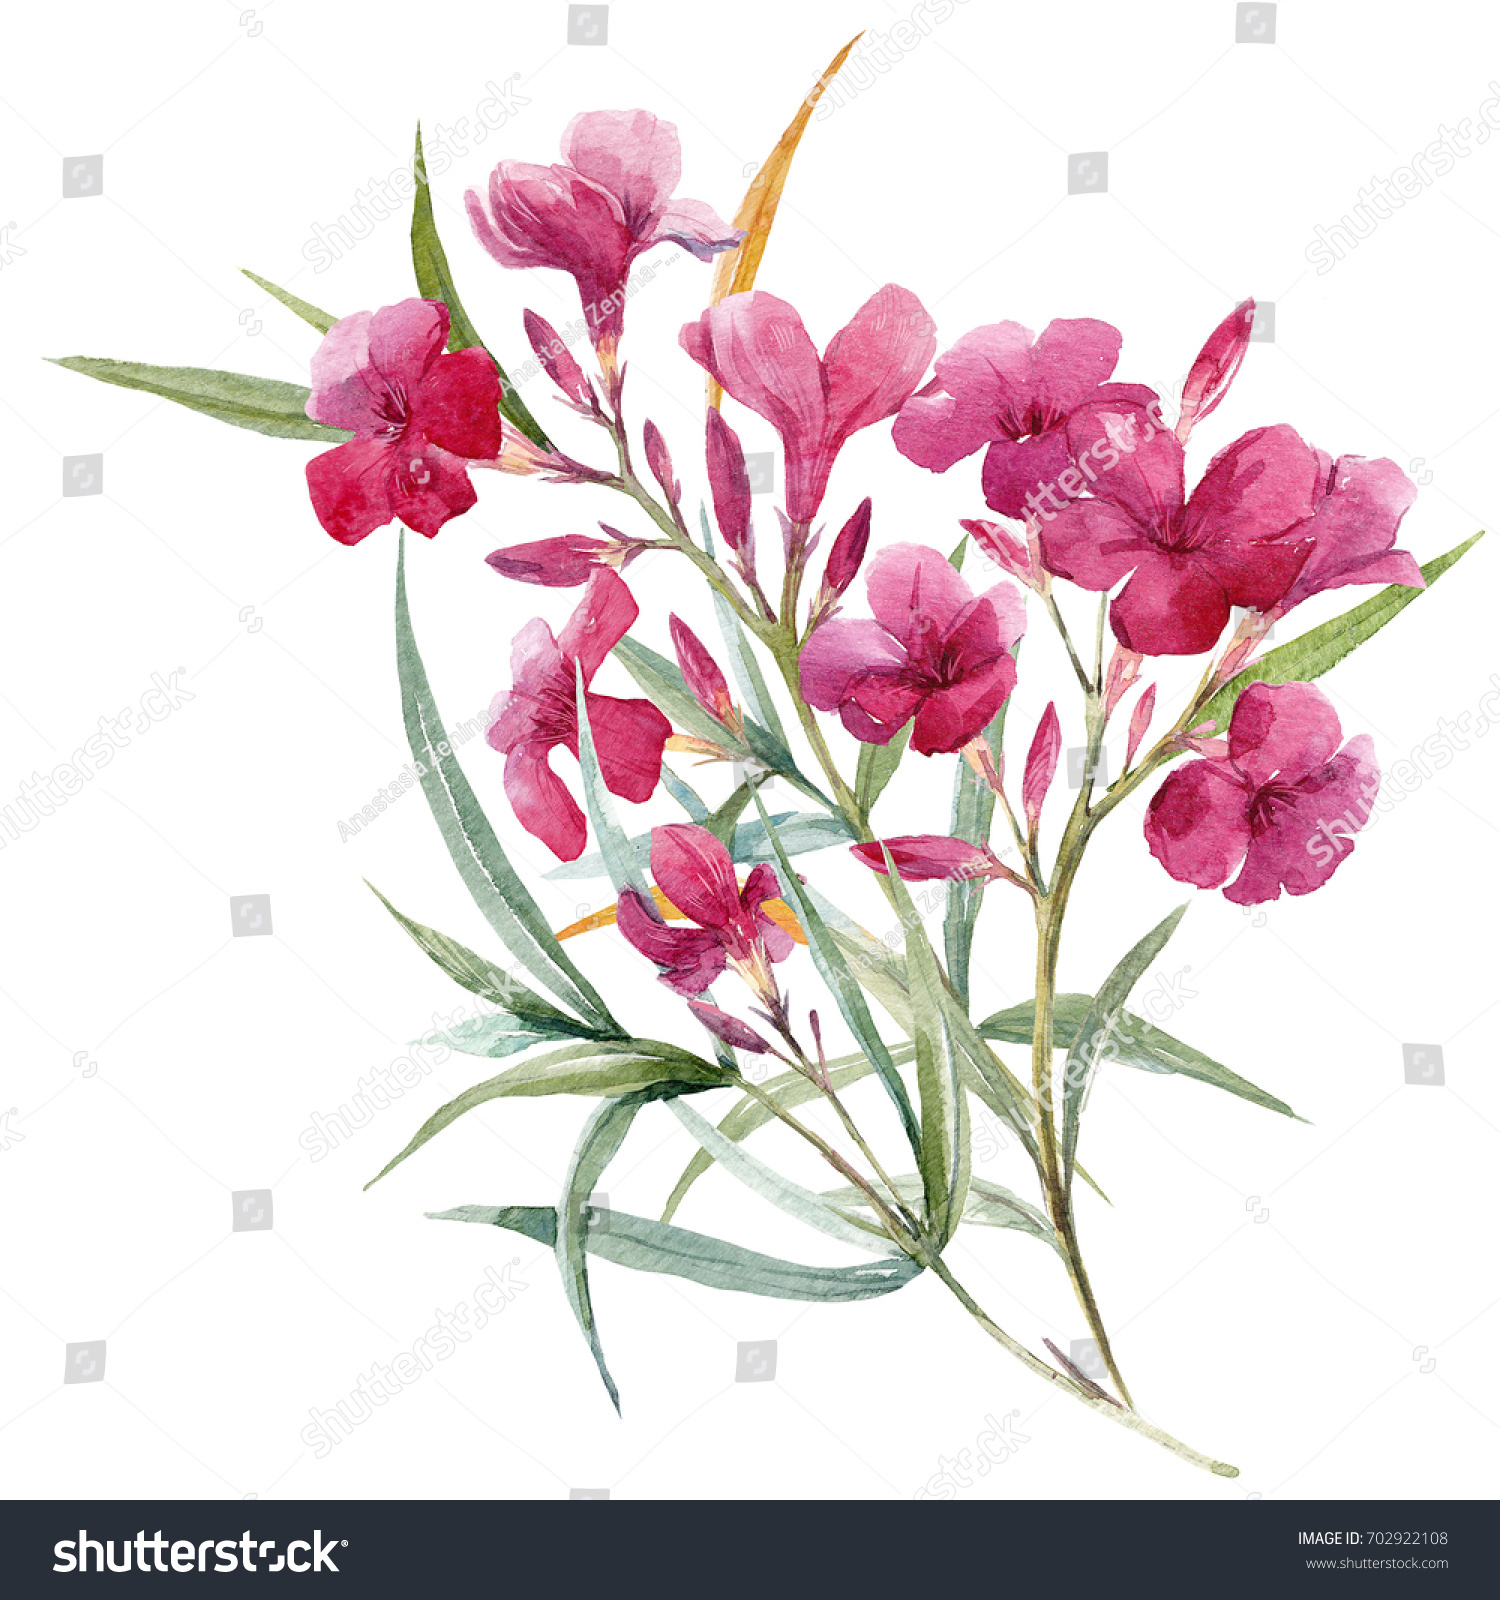 Watercolor Illustration Pink Oleander Flower Branch Stock